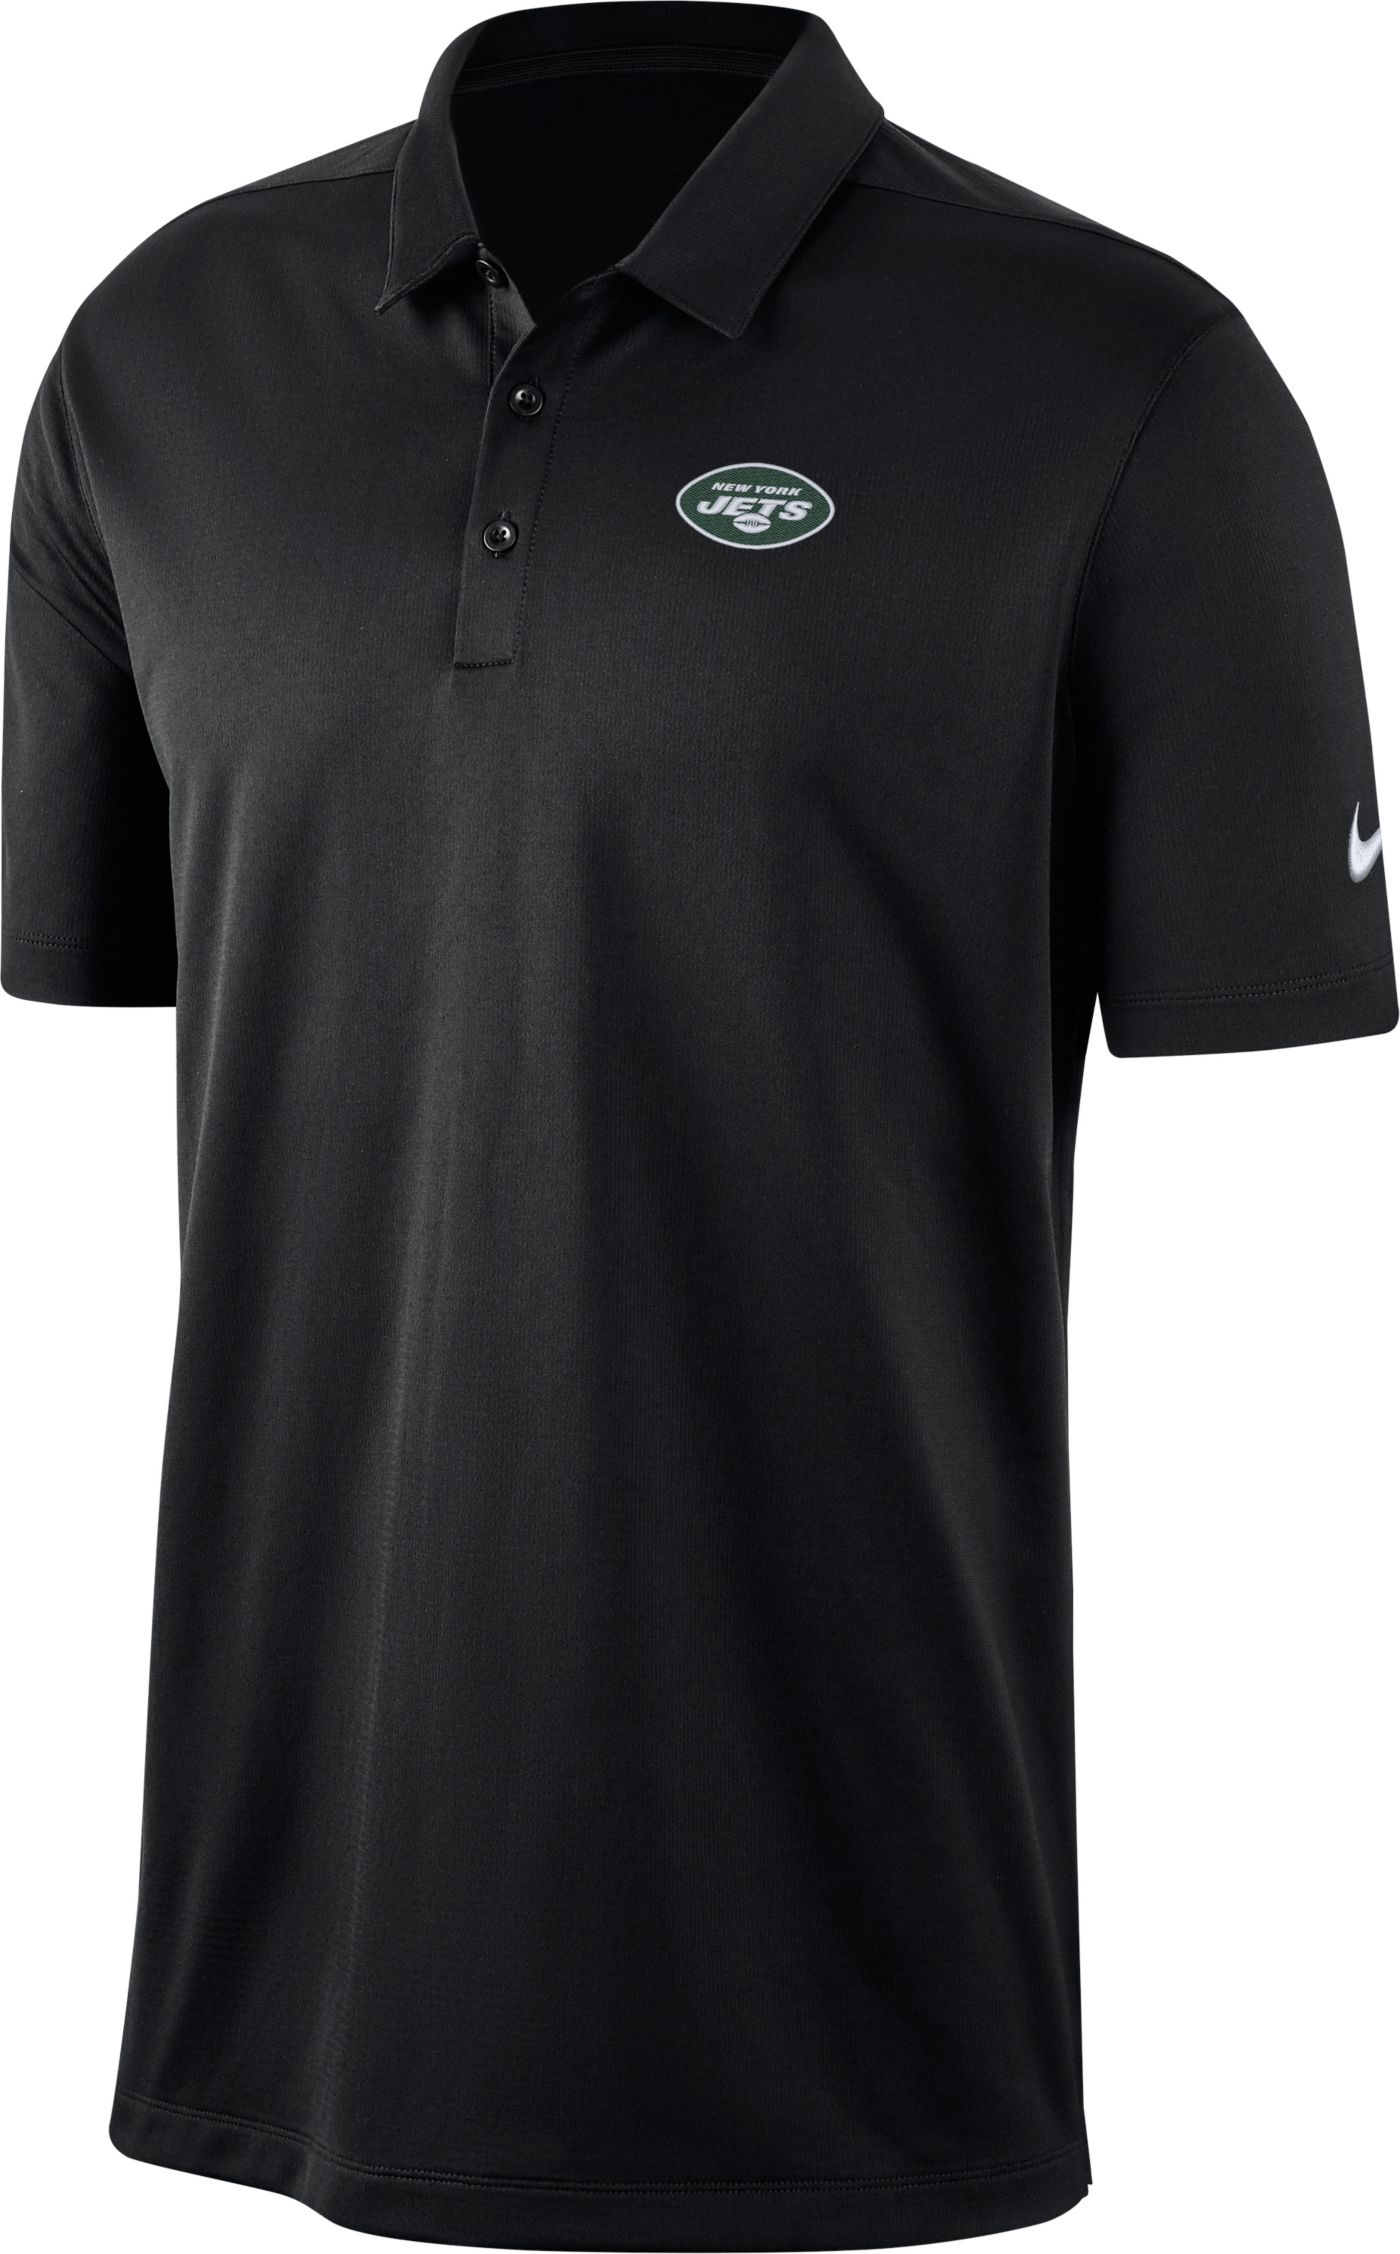 Nike Men's New York Jets Franchise Black Polo